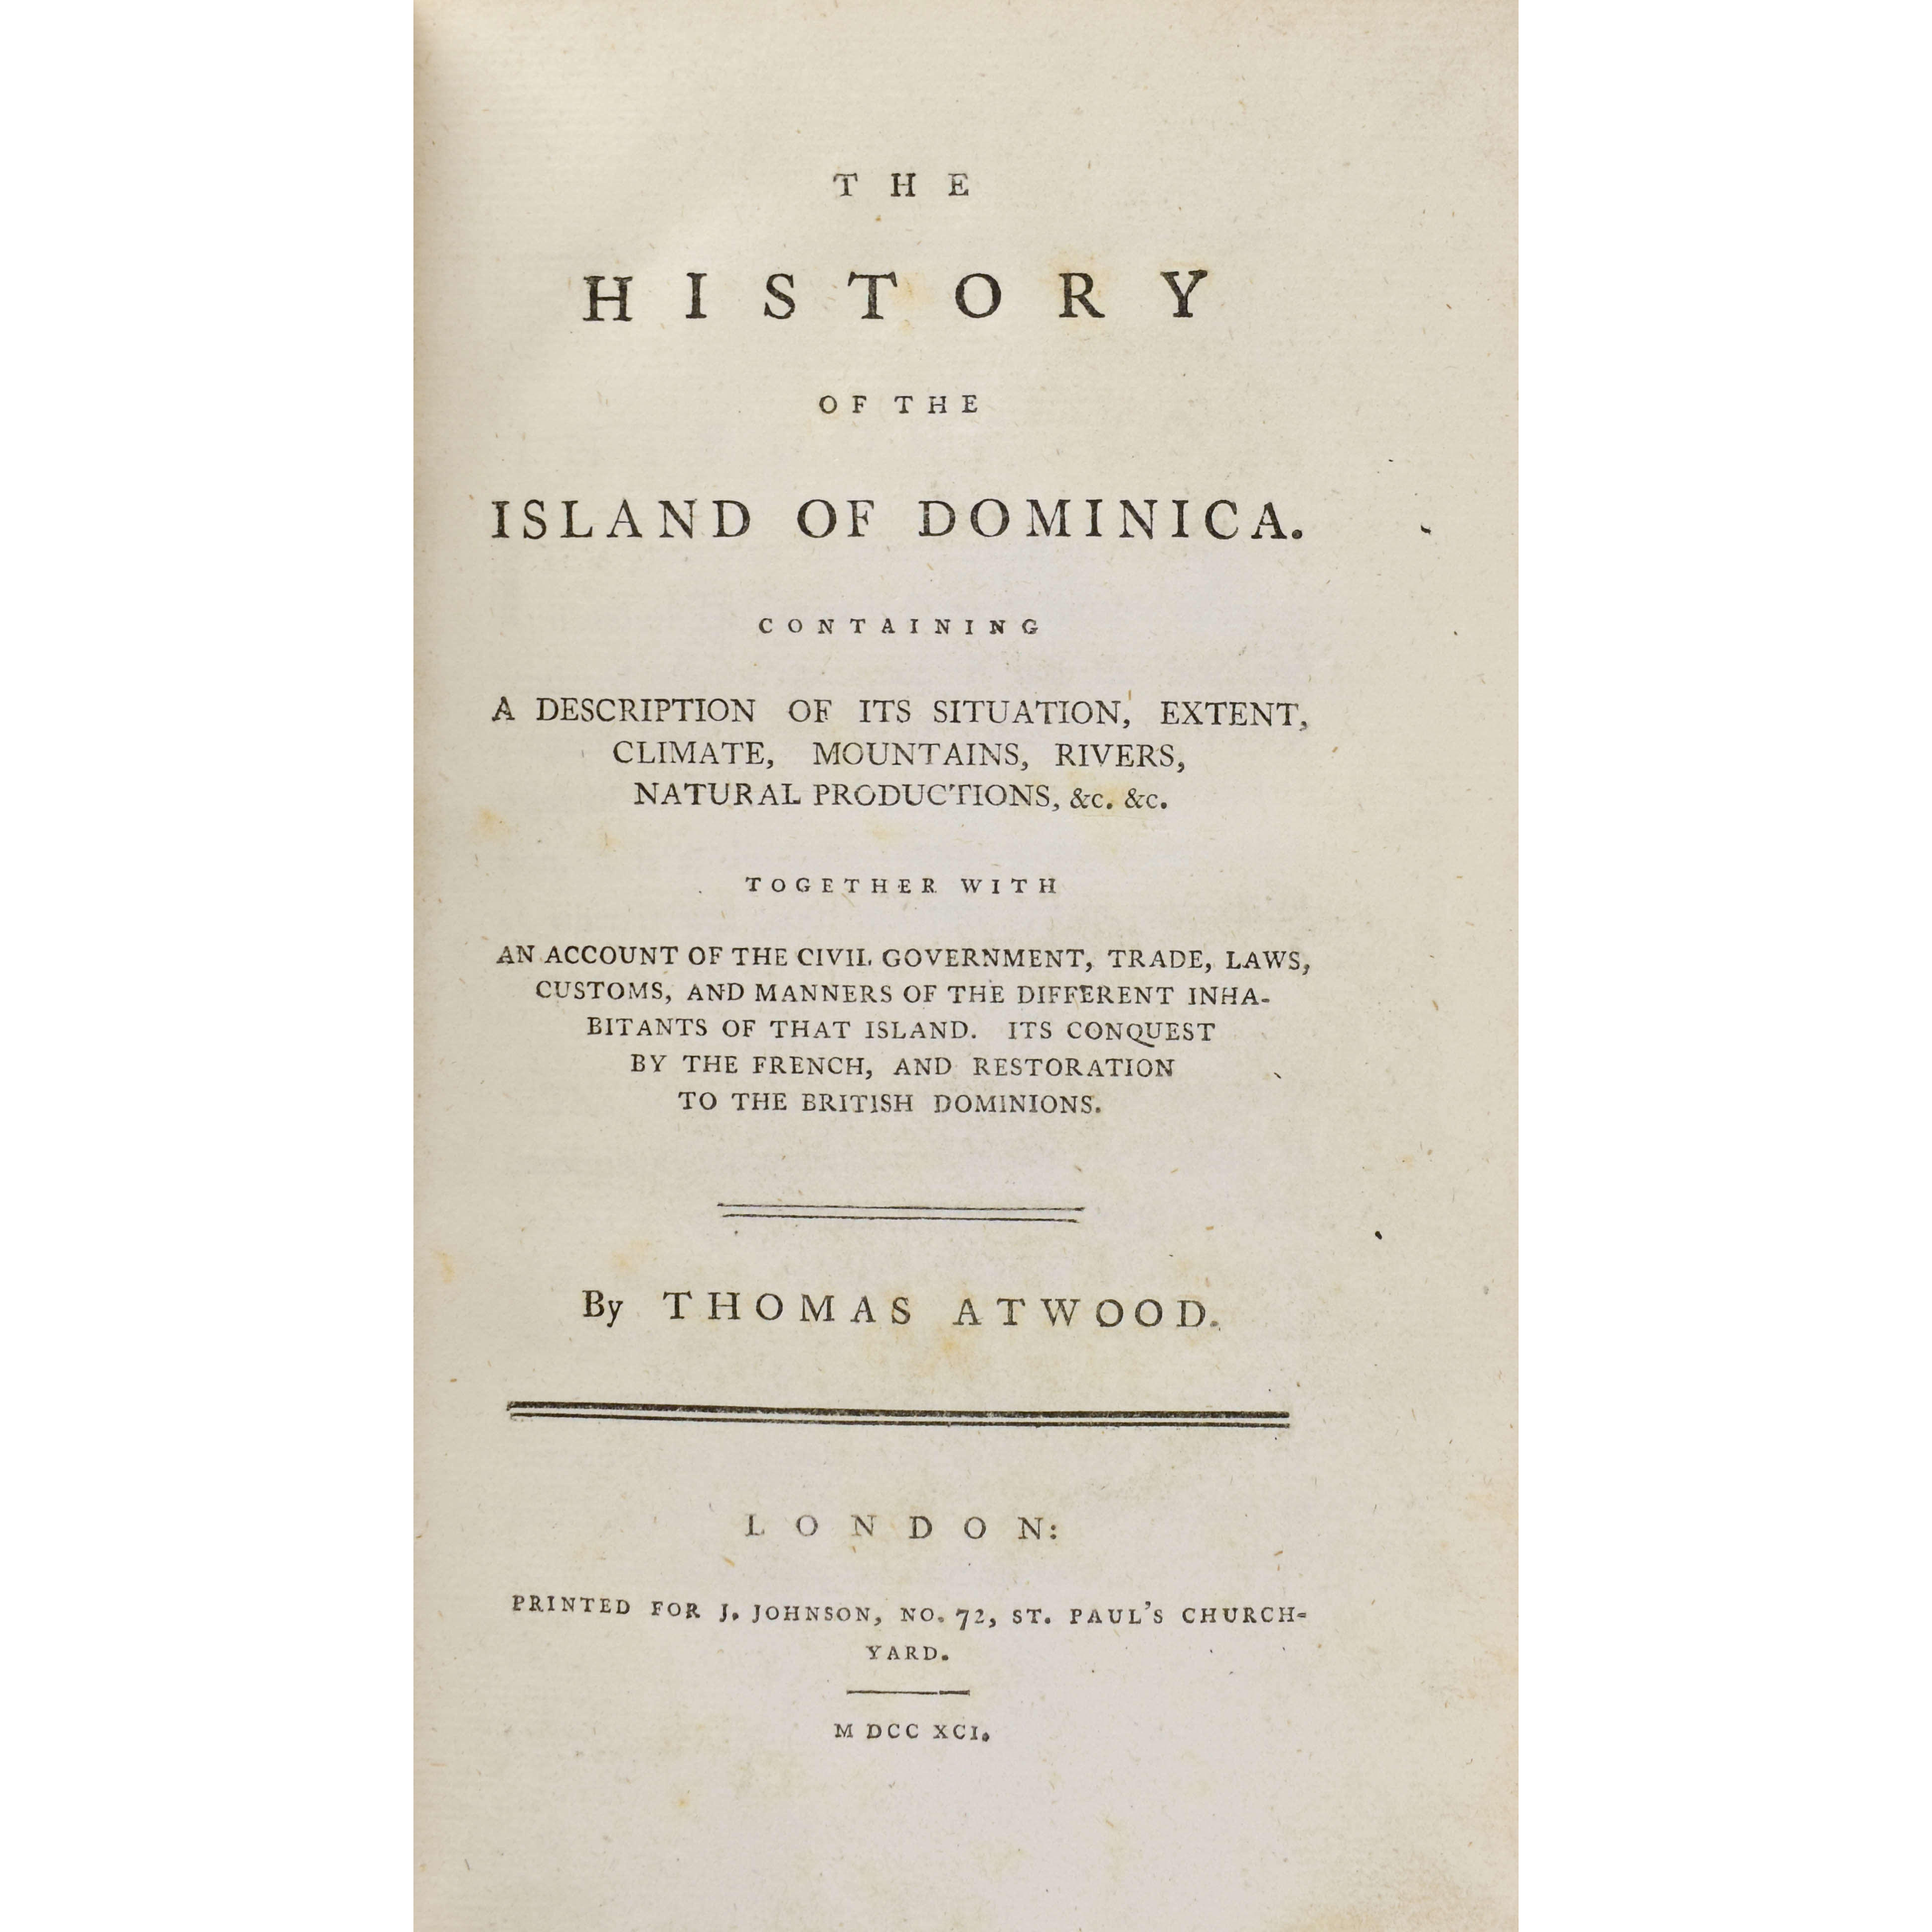 The History of the Island of Dominica, containing a description of its situation, extent, climate, mountains,rivers , natural productions etc,etc. Together with an account of the civil government, trade laws, customs and manners of the different inhabitants of that island. Its conquest by the French and restoration to the British Dominions. (photo 1)